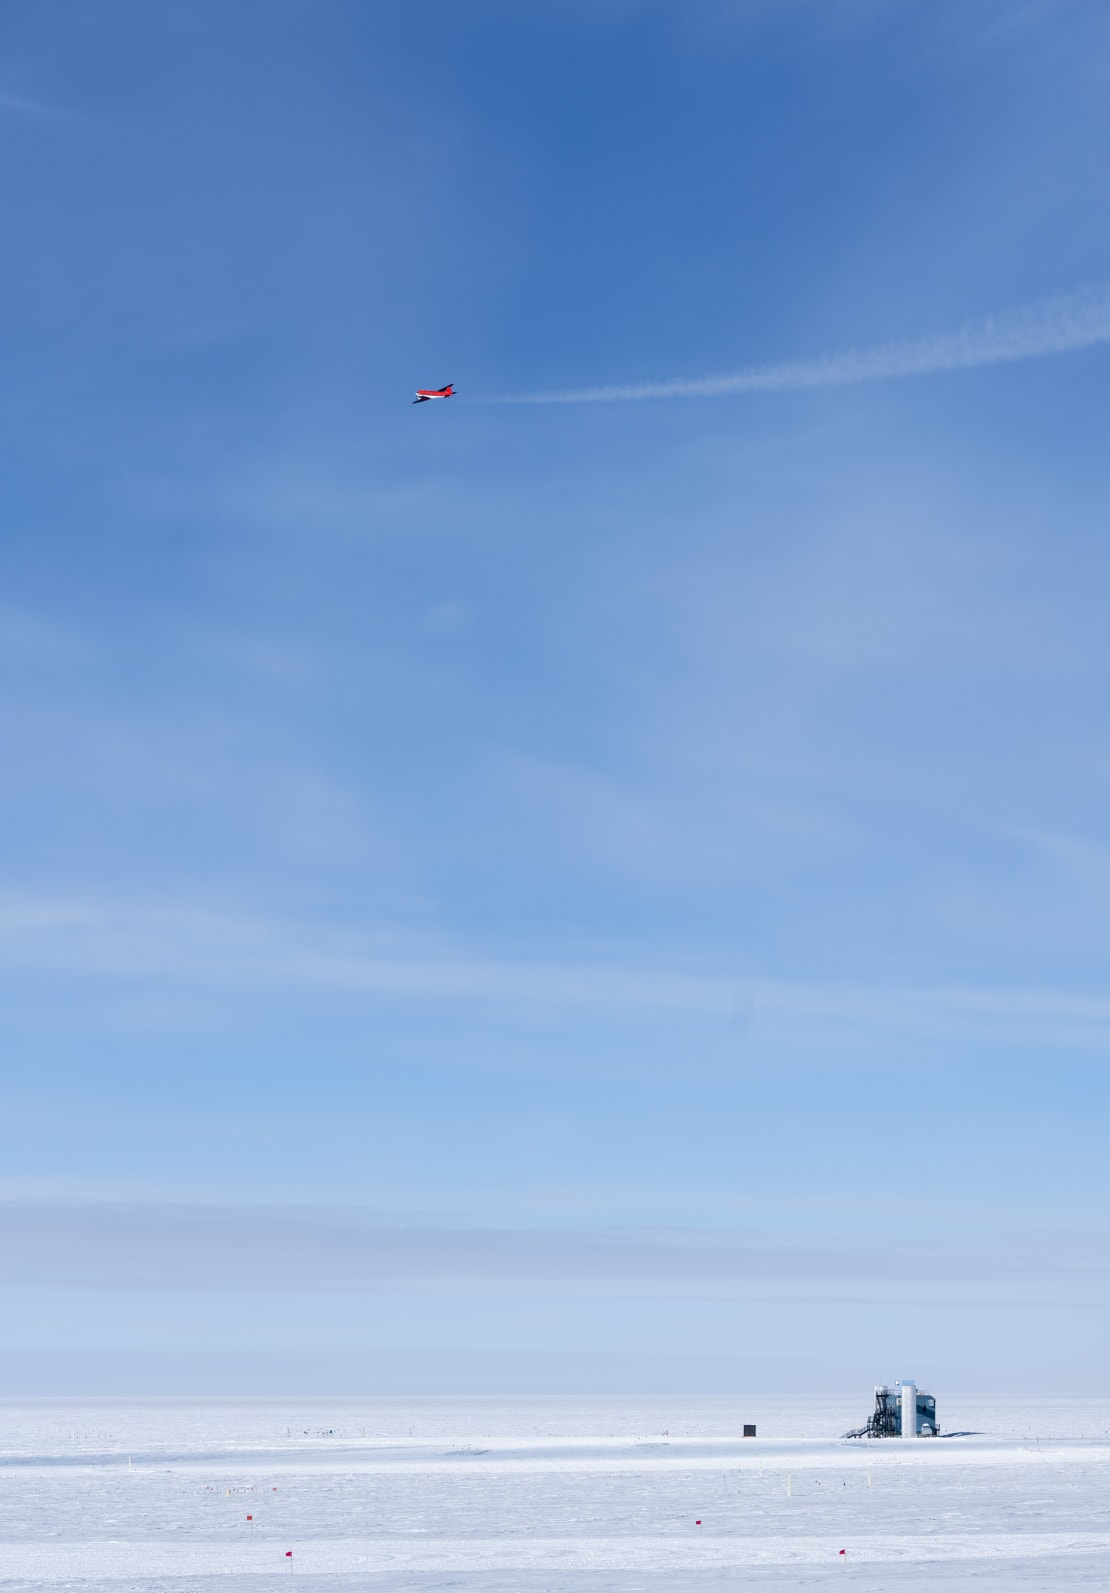 A plane with contrails high in a blue sky over the IceCube Lab, appearing small in lower right.